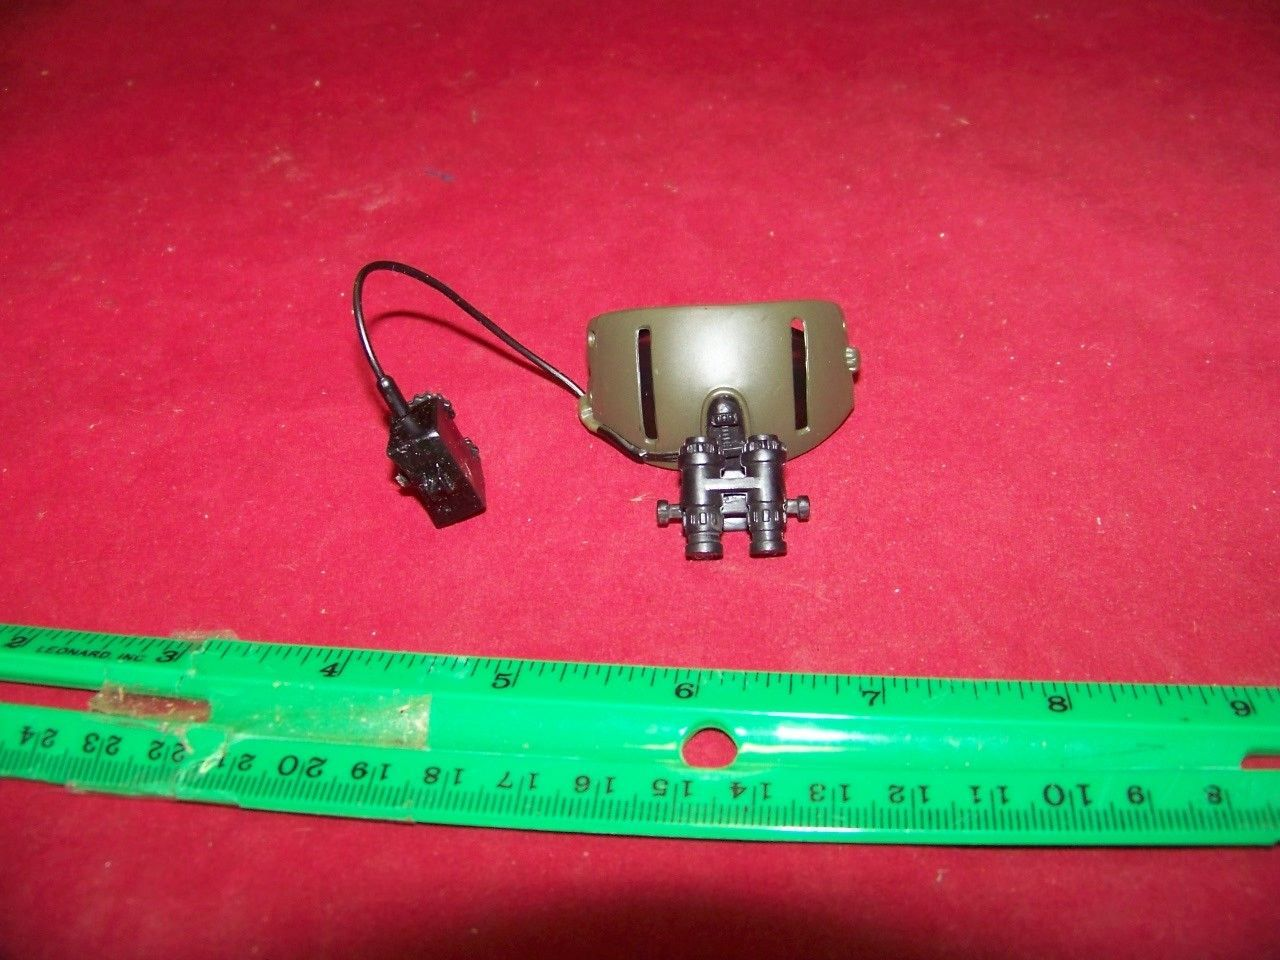 1/6th Scale Russian Grenade lot 31 Scale, Helicopter